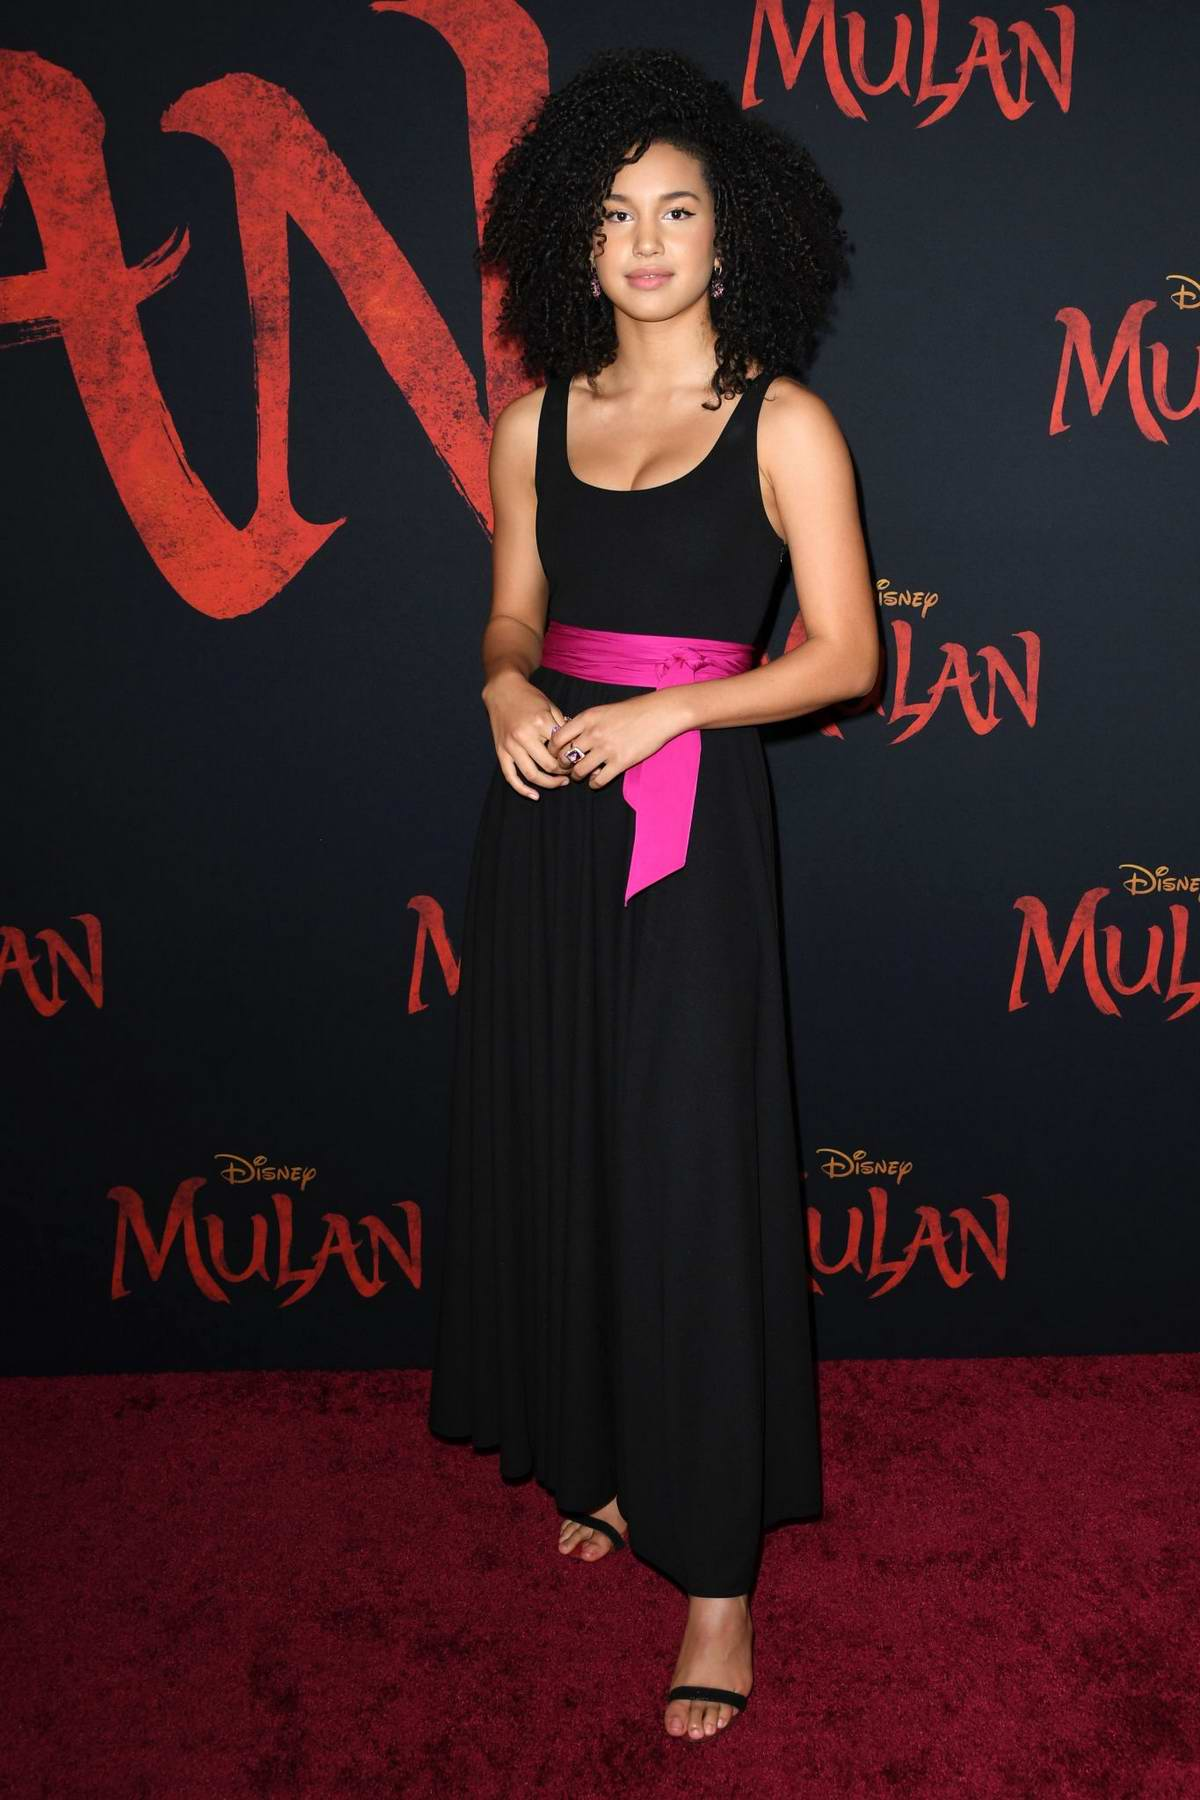 Sofia Wylie attends the Premiere of Disney's 'Mulan' at Dolby Theatre in Los Angeles